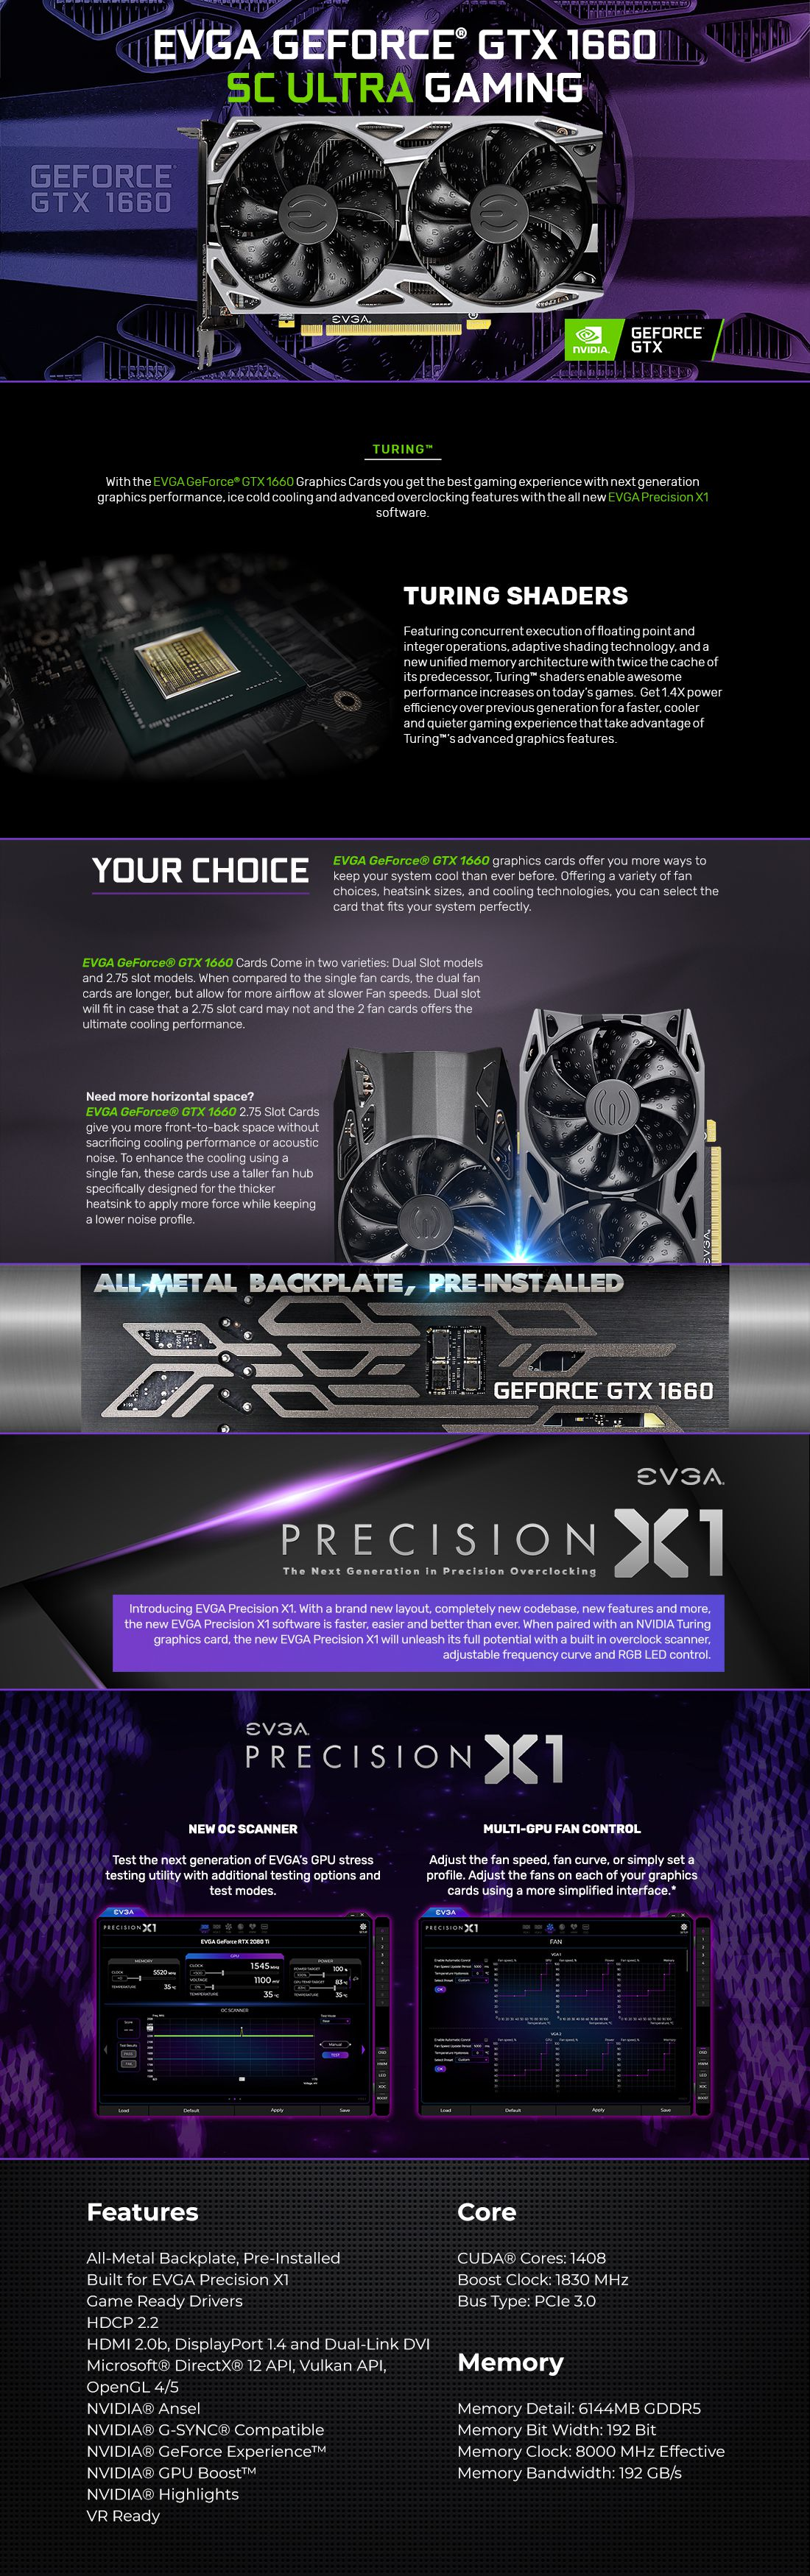 A large marketing image providing additional information about the product eVGA GeForce GTX1660 SC Ultra 6GB GDDR5 - Additional alt info not provided